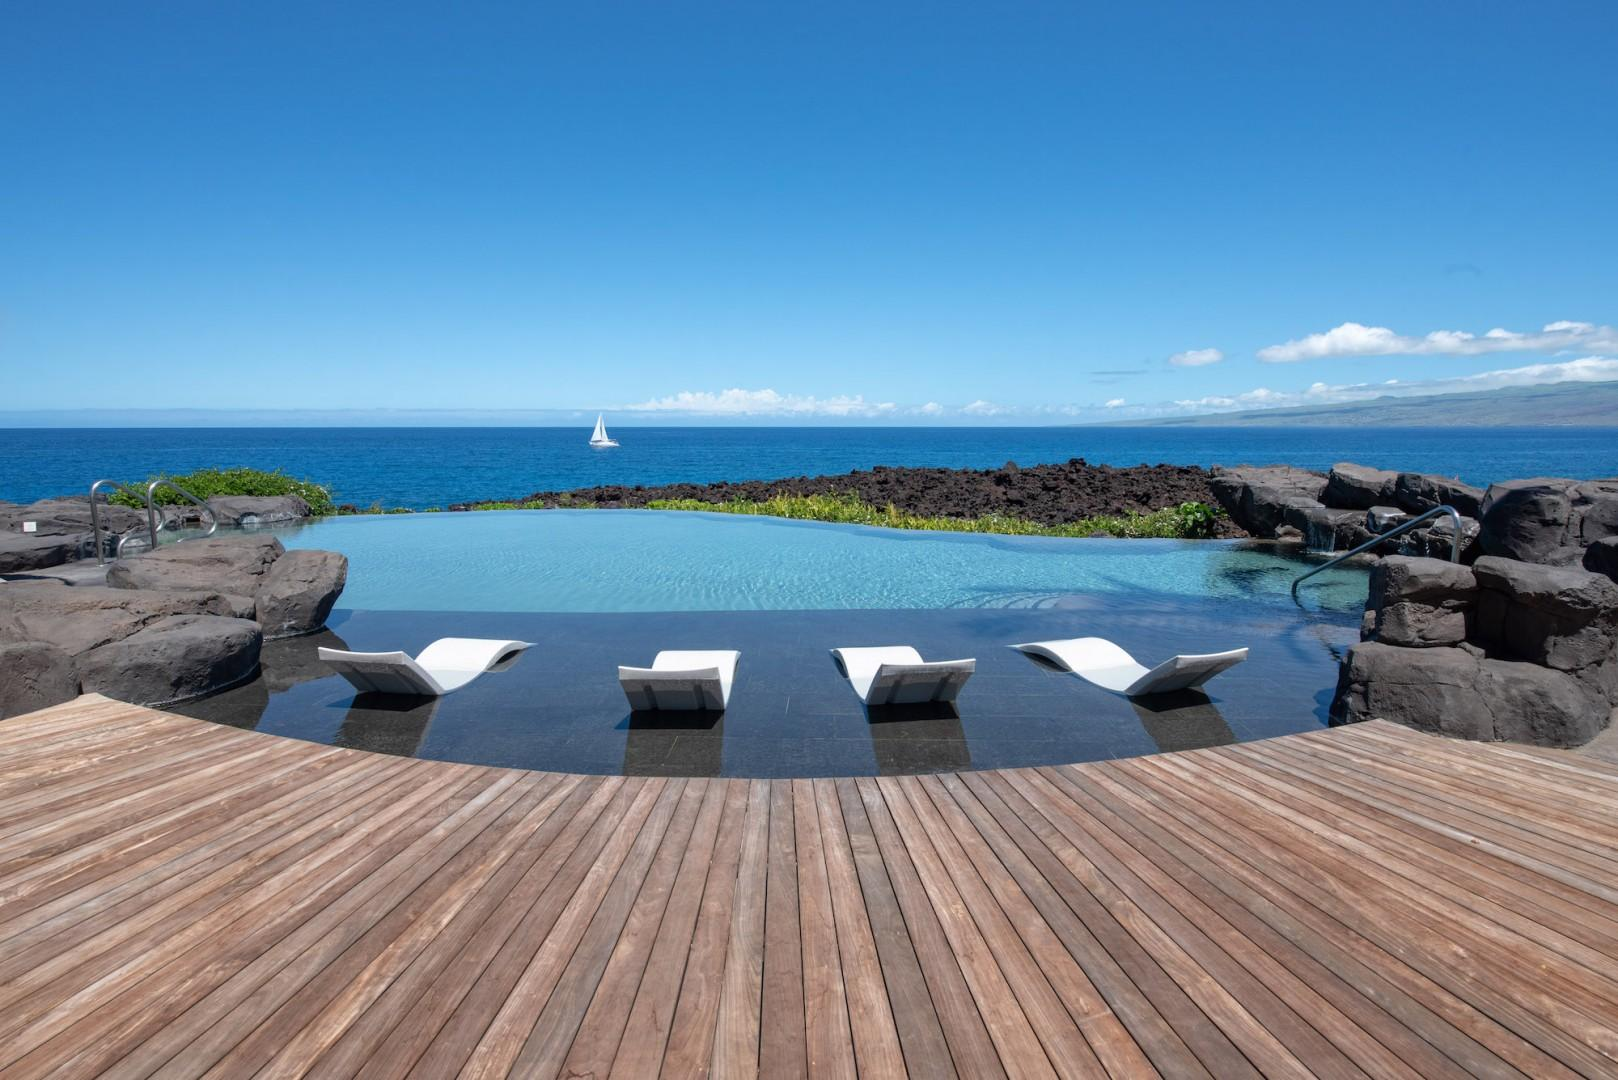 The Grotto Amenity Center w/ Pools, Jacuzzis and Endless Breathtaking Ocean Views!